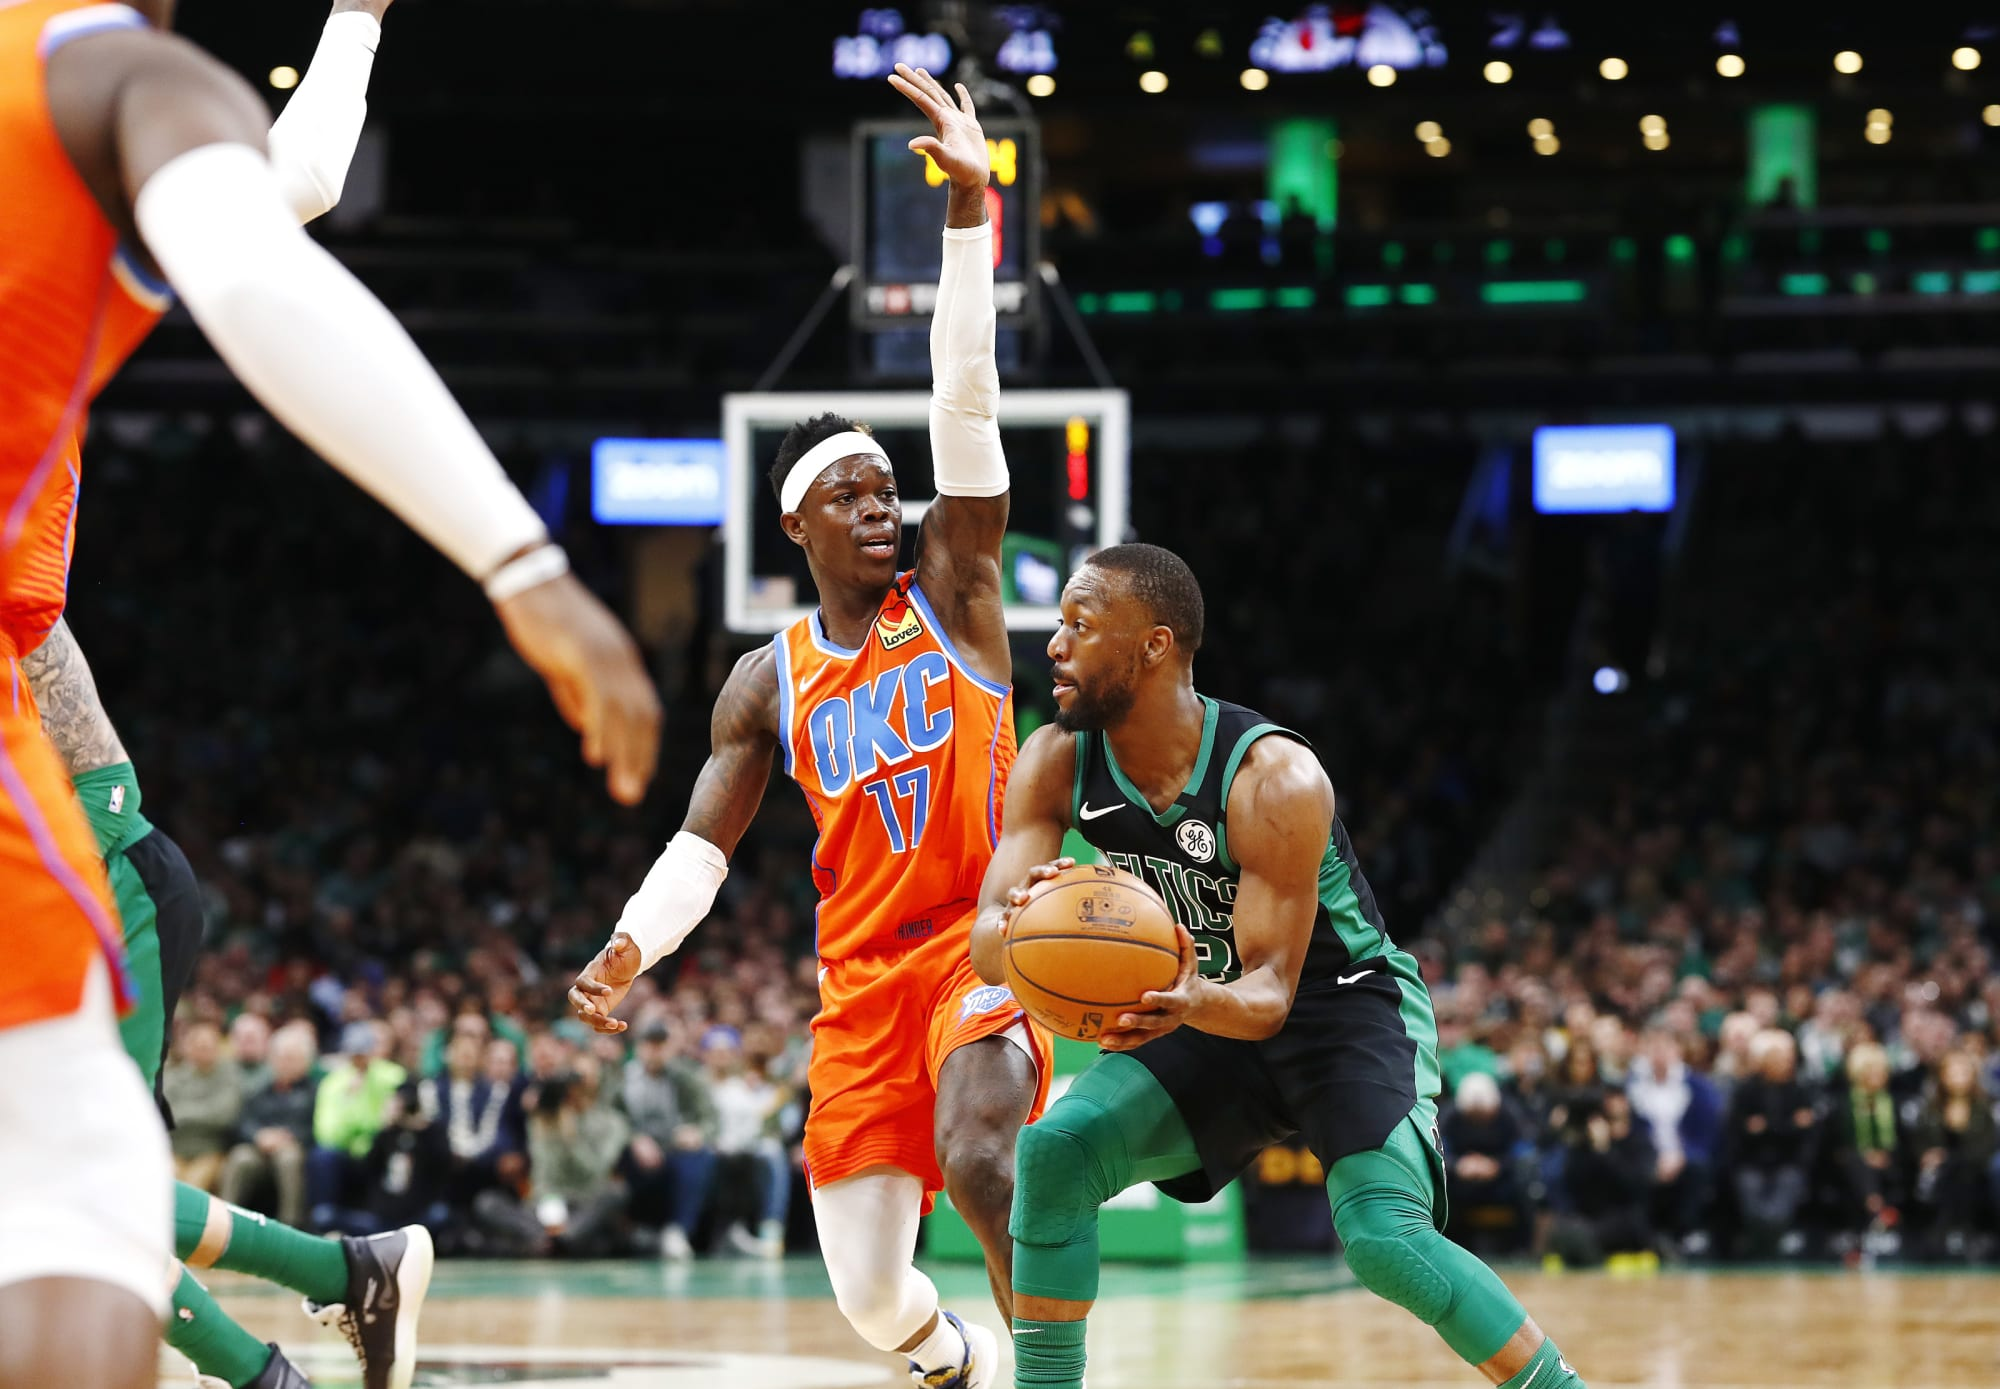 OKC Thunder play Celtics, 76ers and Blazers in Disney scrimmage games